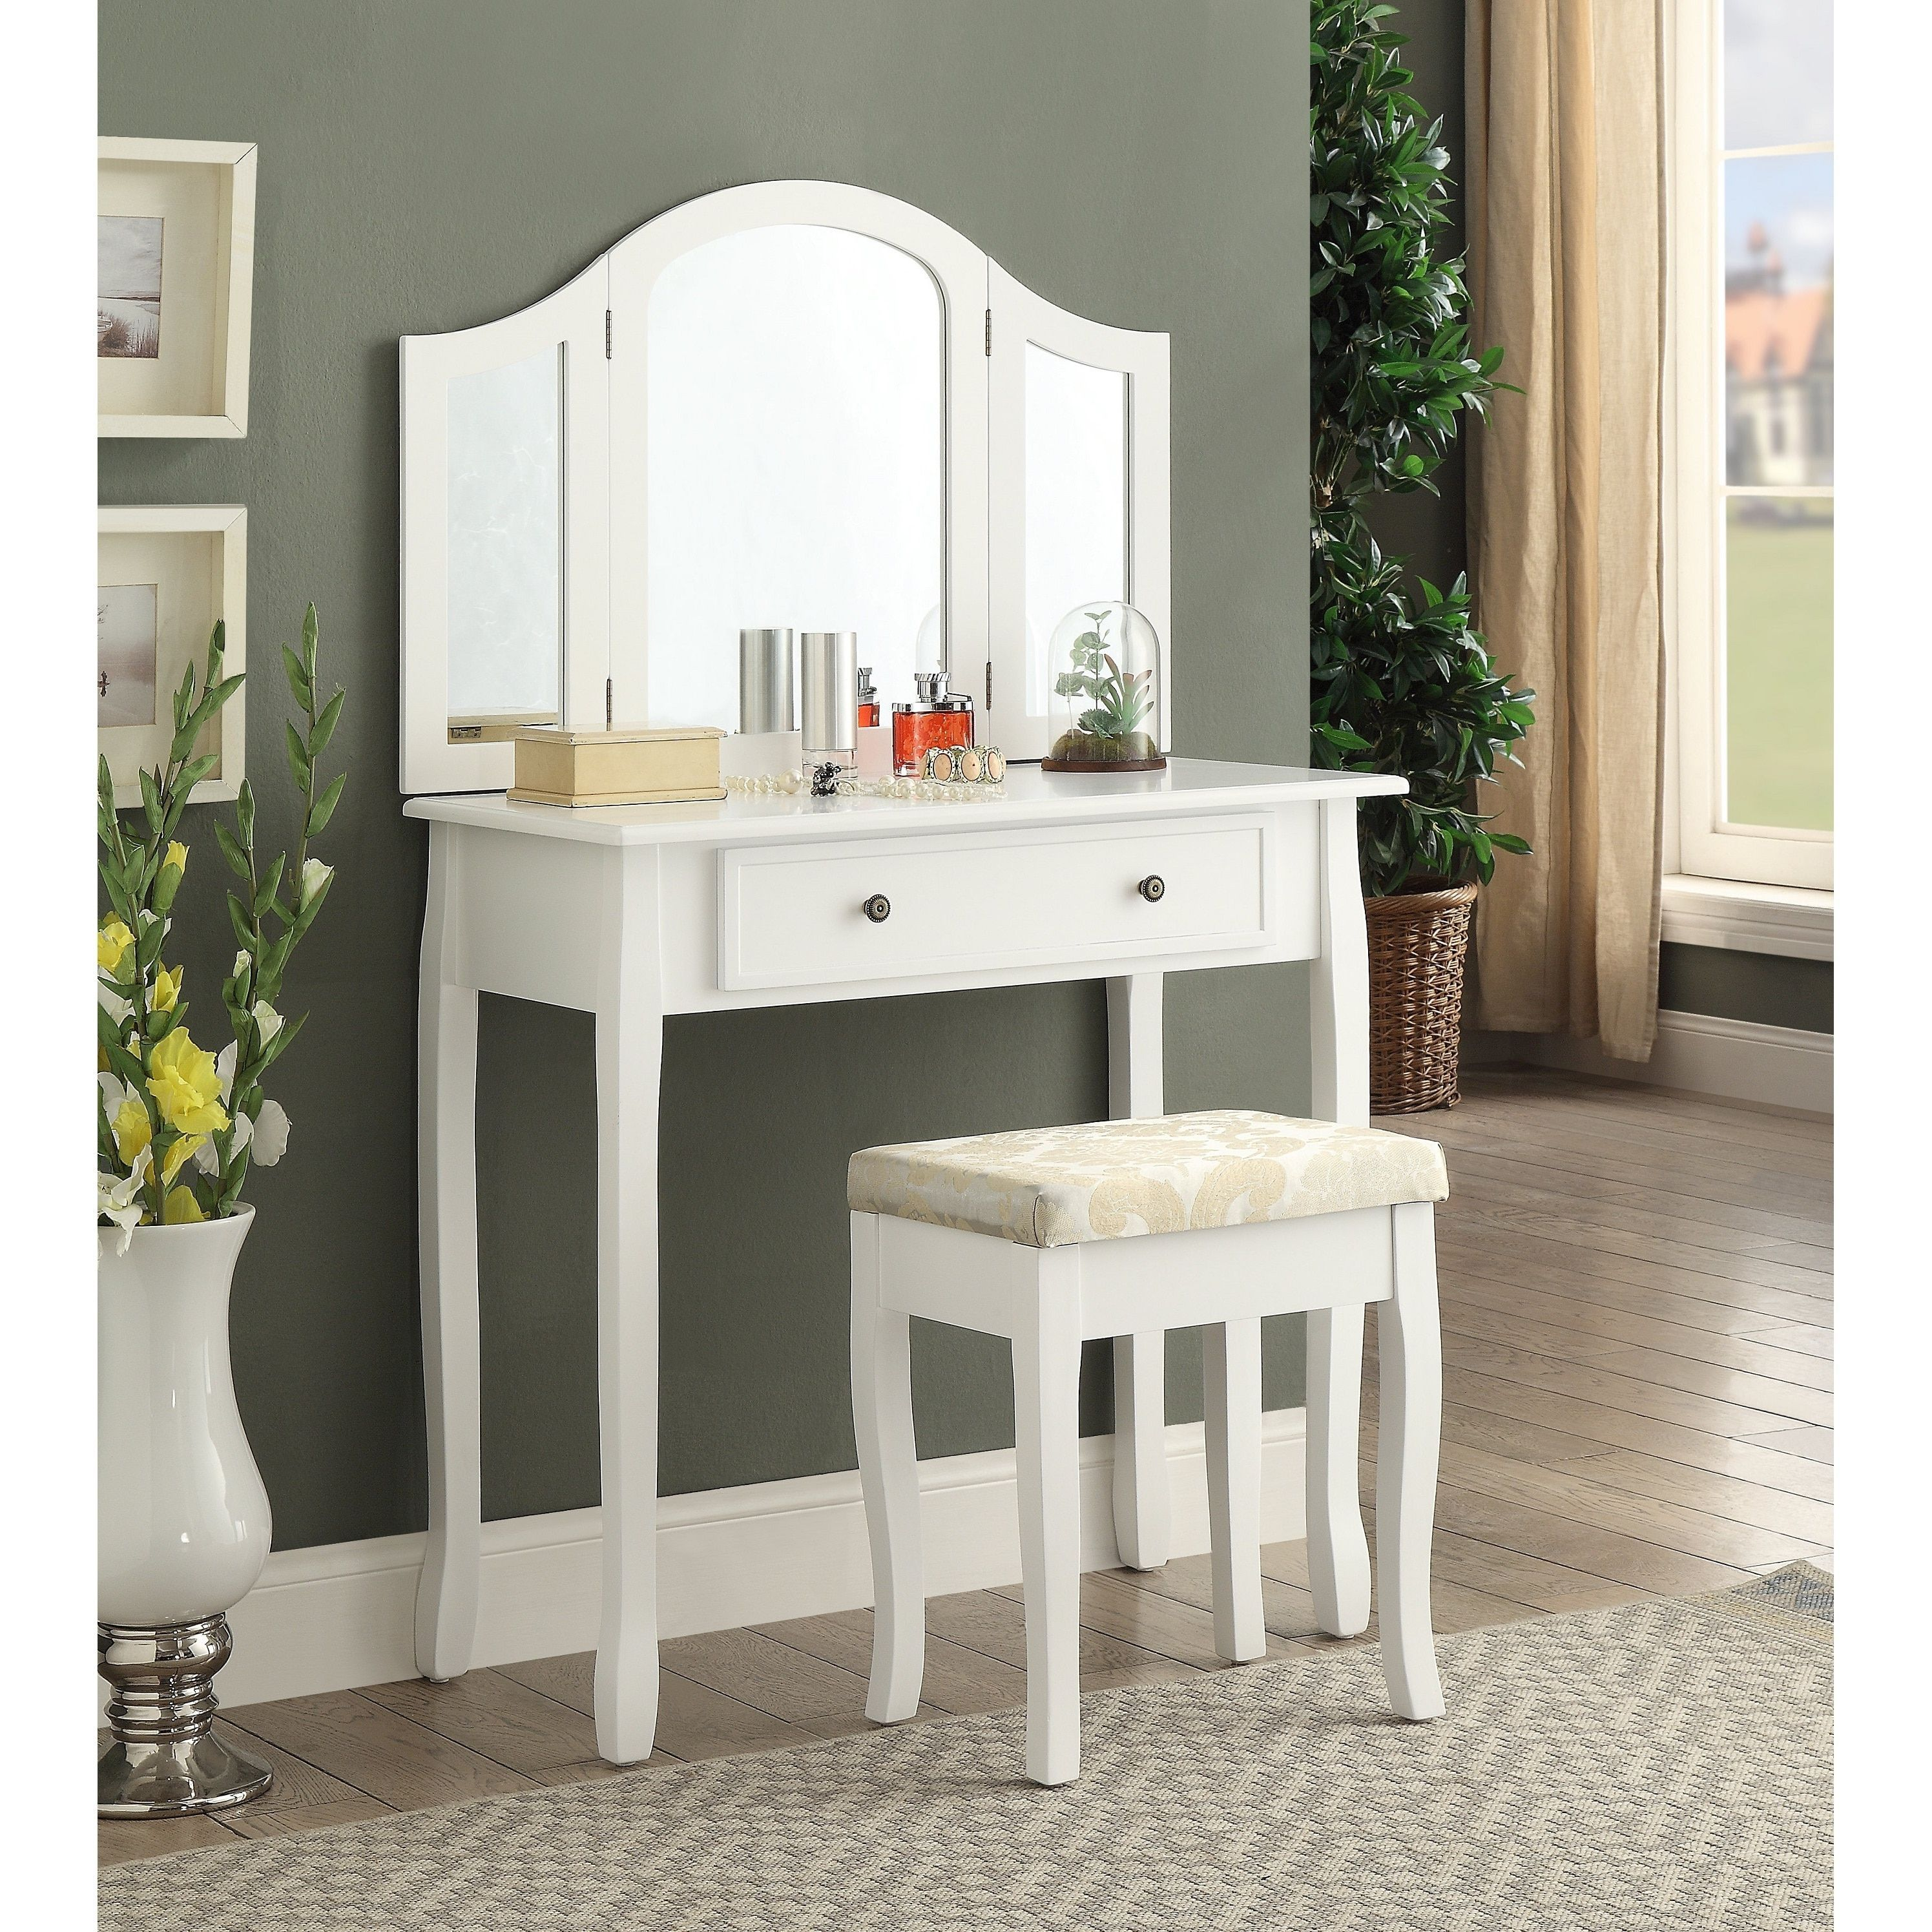 ilana value desk with vanity drawers number city three for item coaster bedroom products furniture